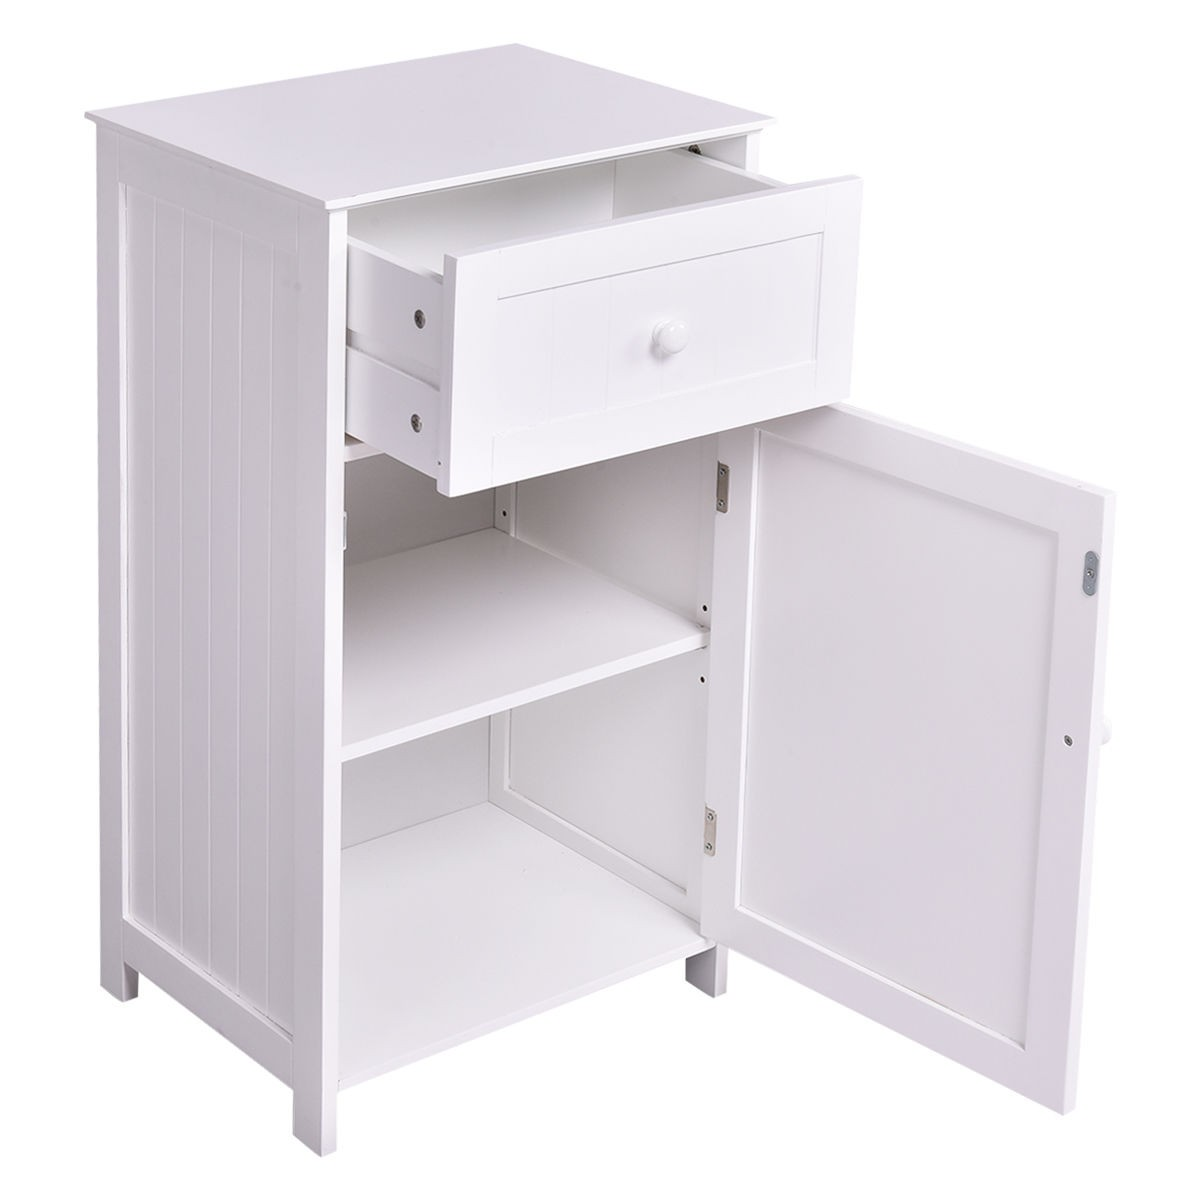 White Bathroom Furniture Storage Cupboard Cabinet Shelves: Kitchen Bathroom Storage Cabinet Floor Stand White Wood